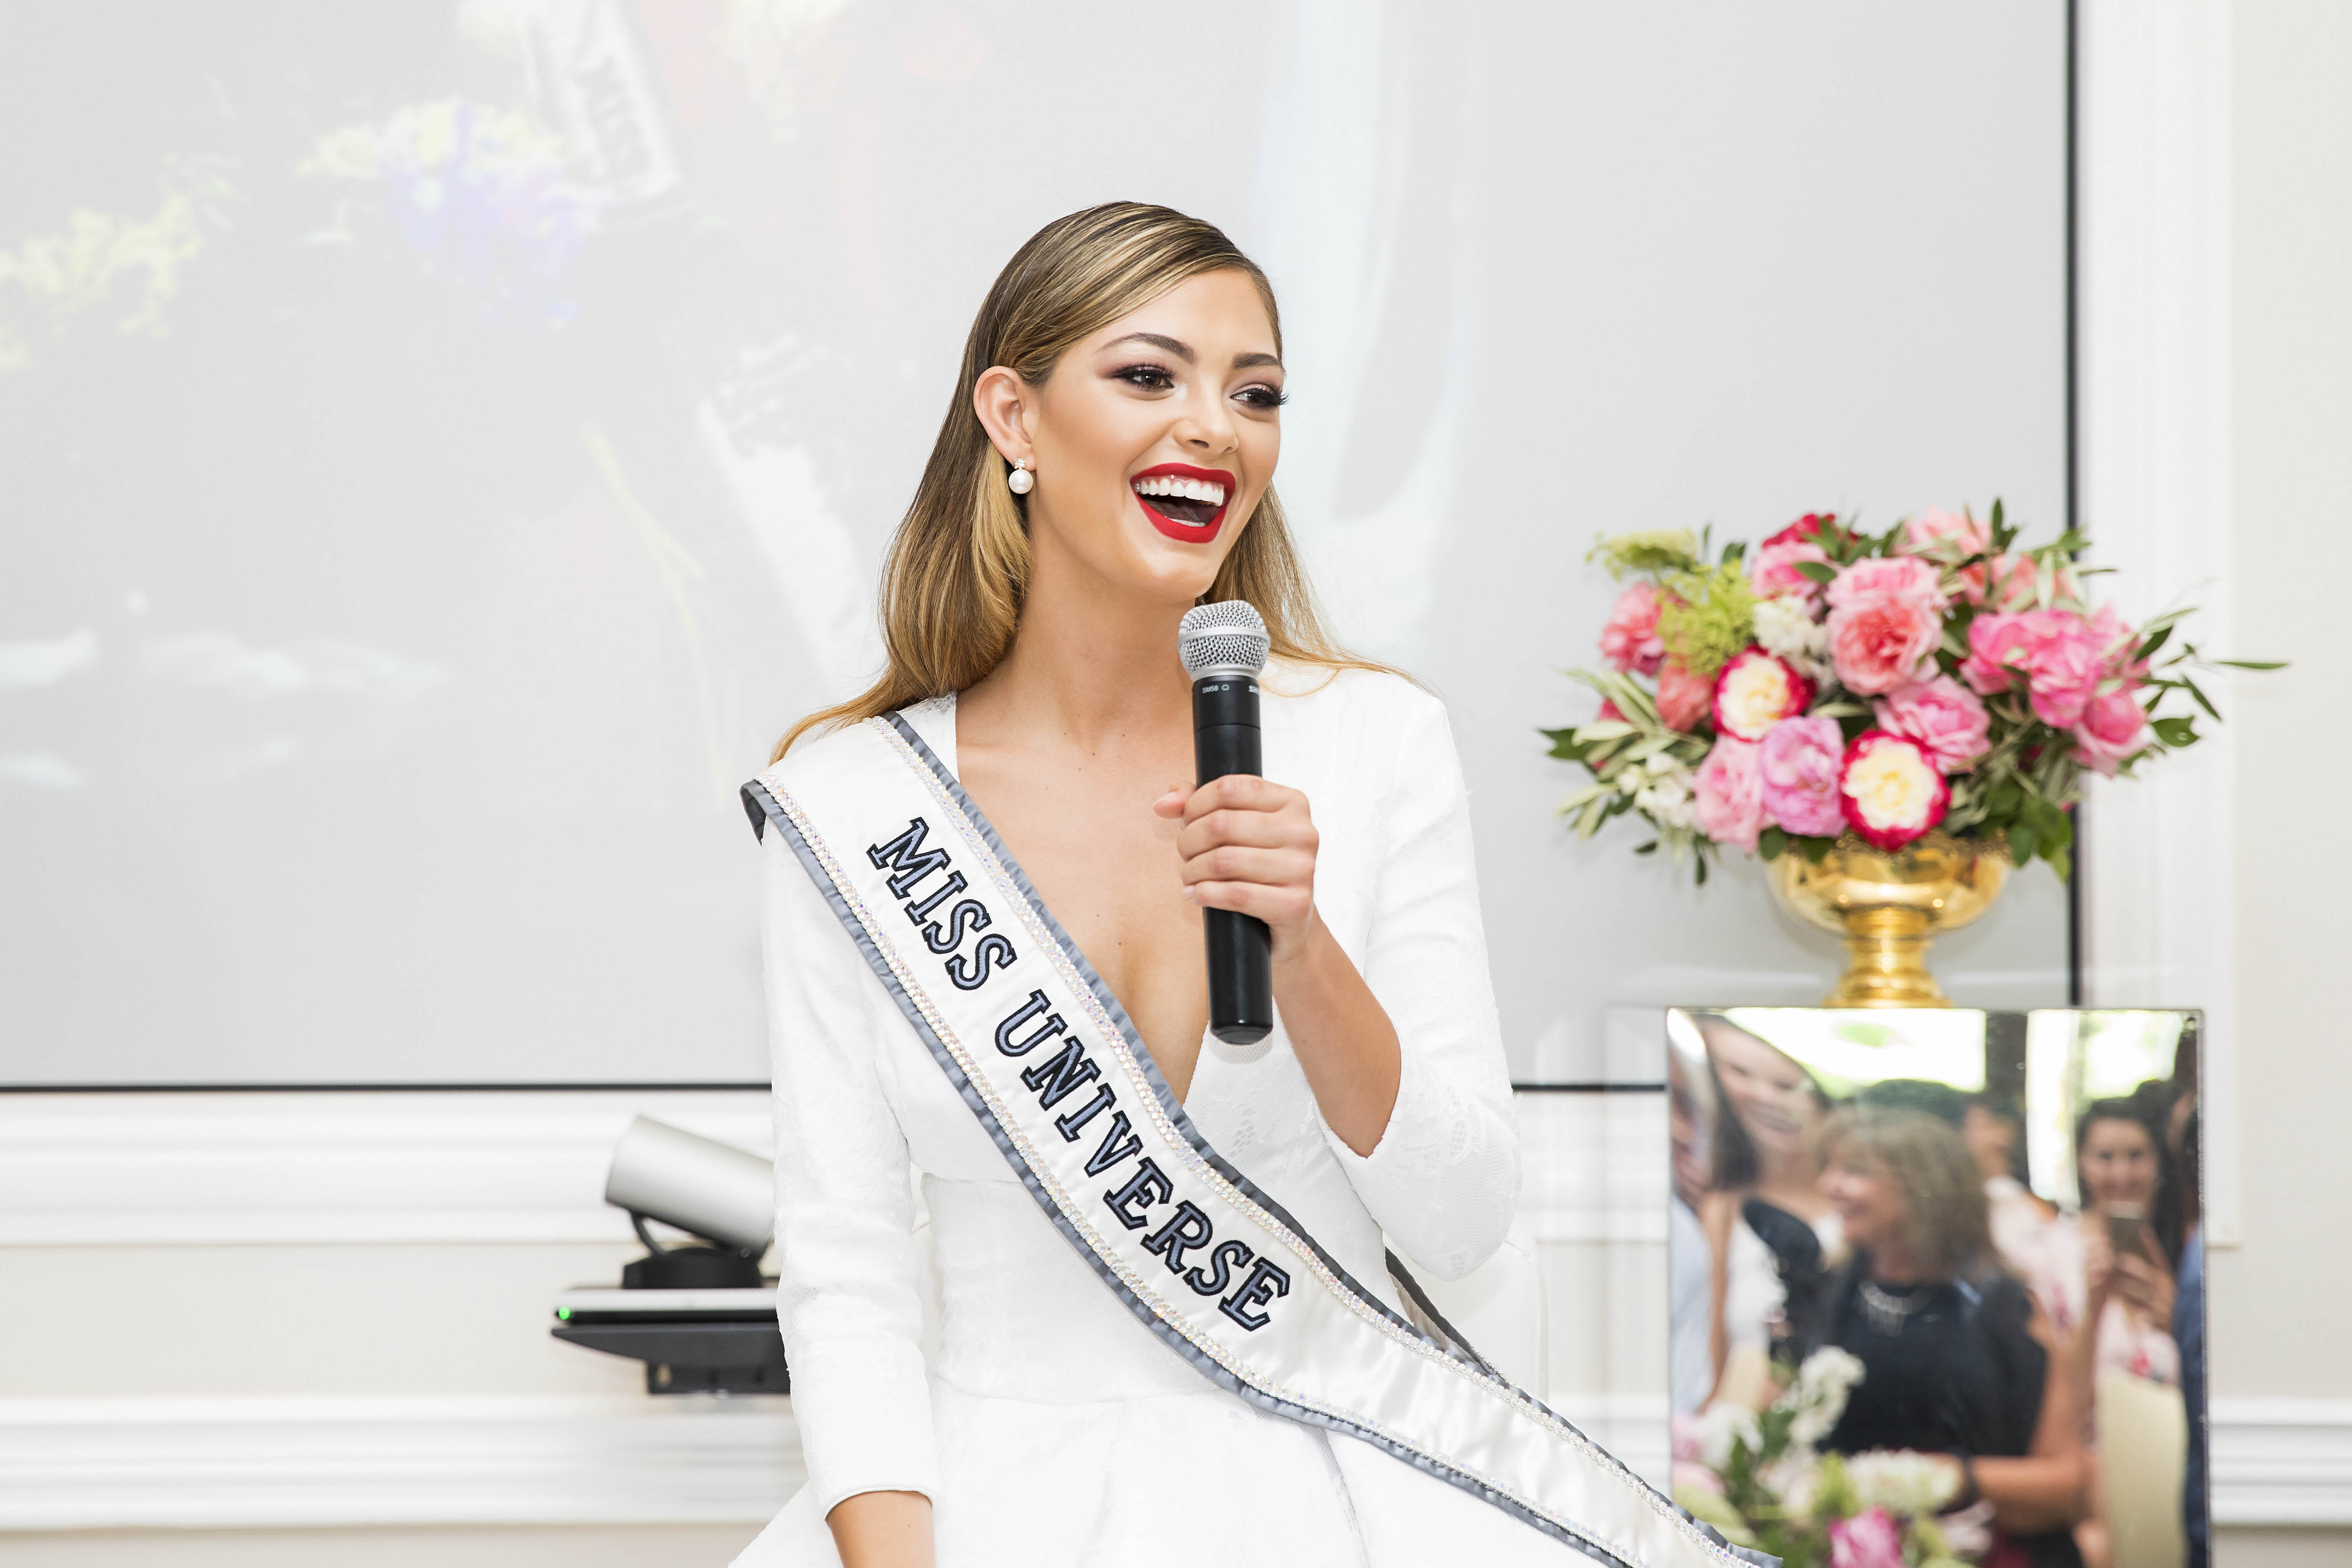 Meet Miss Universe 2018 Our Very Own Demi Leigh Nel